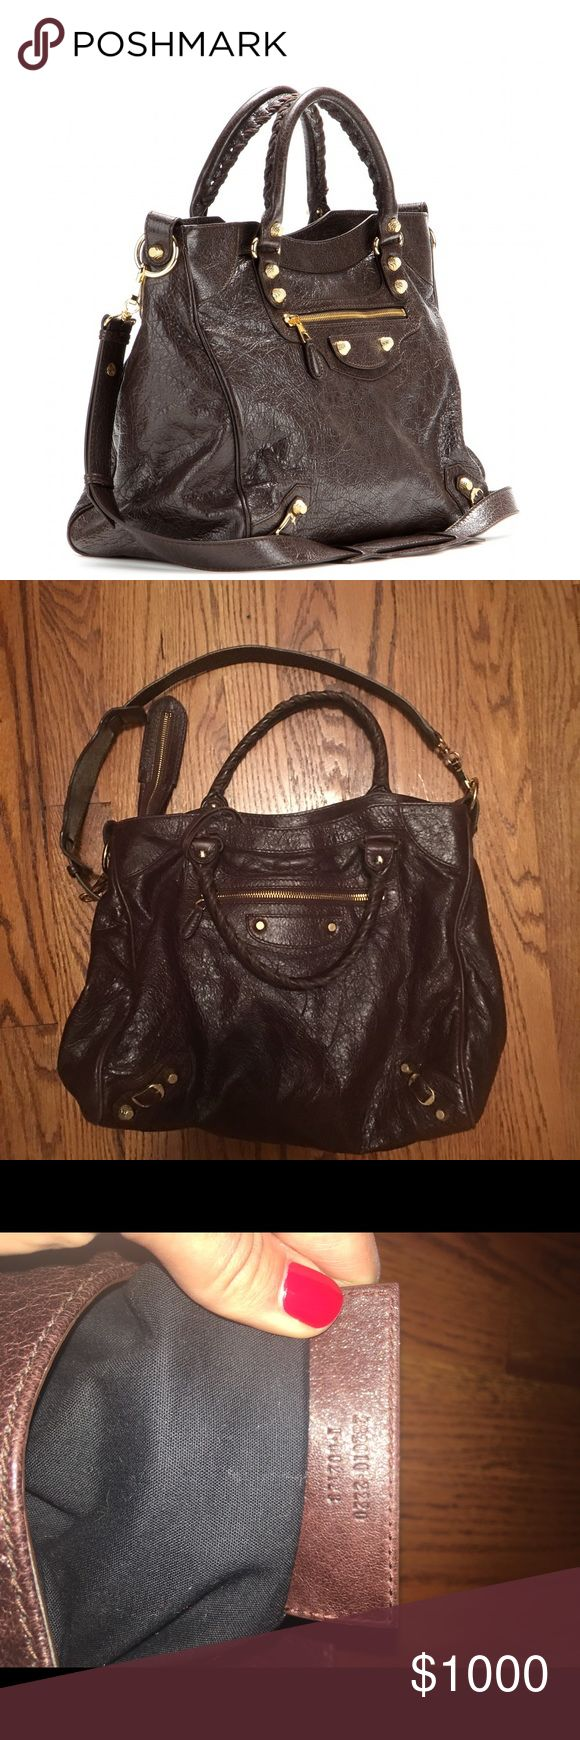 Balenciaga Velo bag in brown 100% authentic! In absolutely amazing condition. Used about 5-10 times. Barely any signs of wear. Inquire/questions/more pics at teressafazio aol. com. Gold buttons. It's a beautiful bag. Balenciaga Bags Shoulder Bags